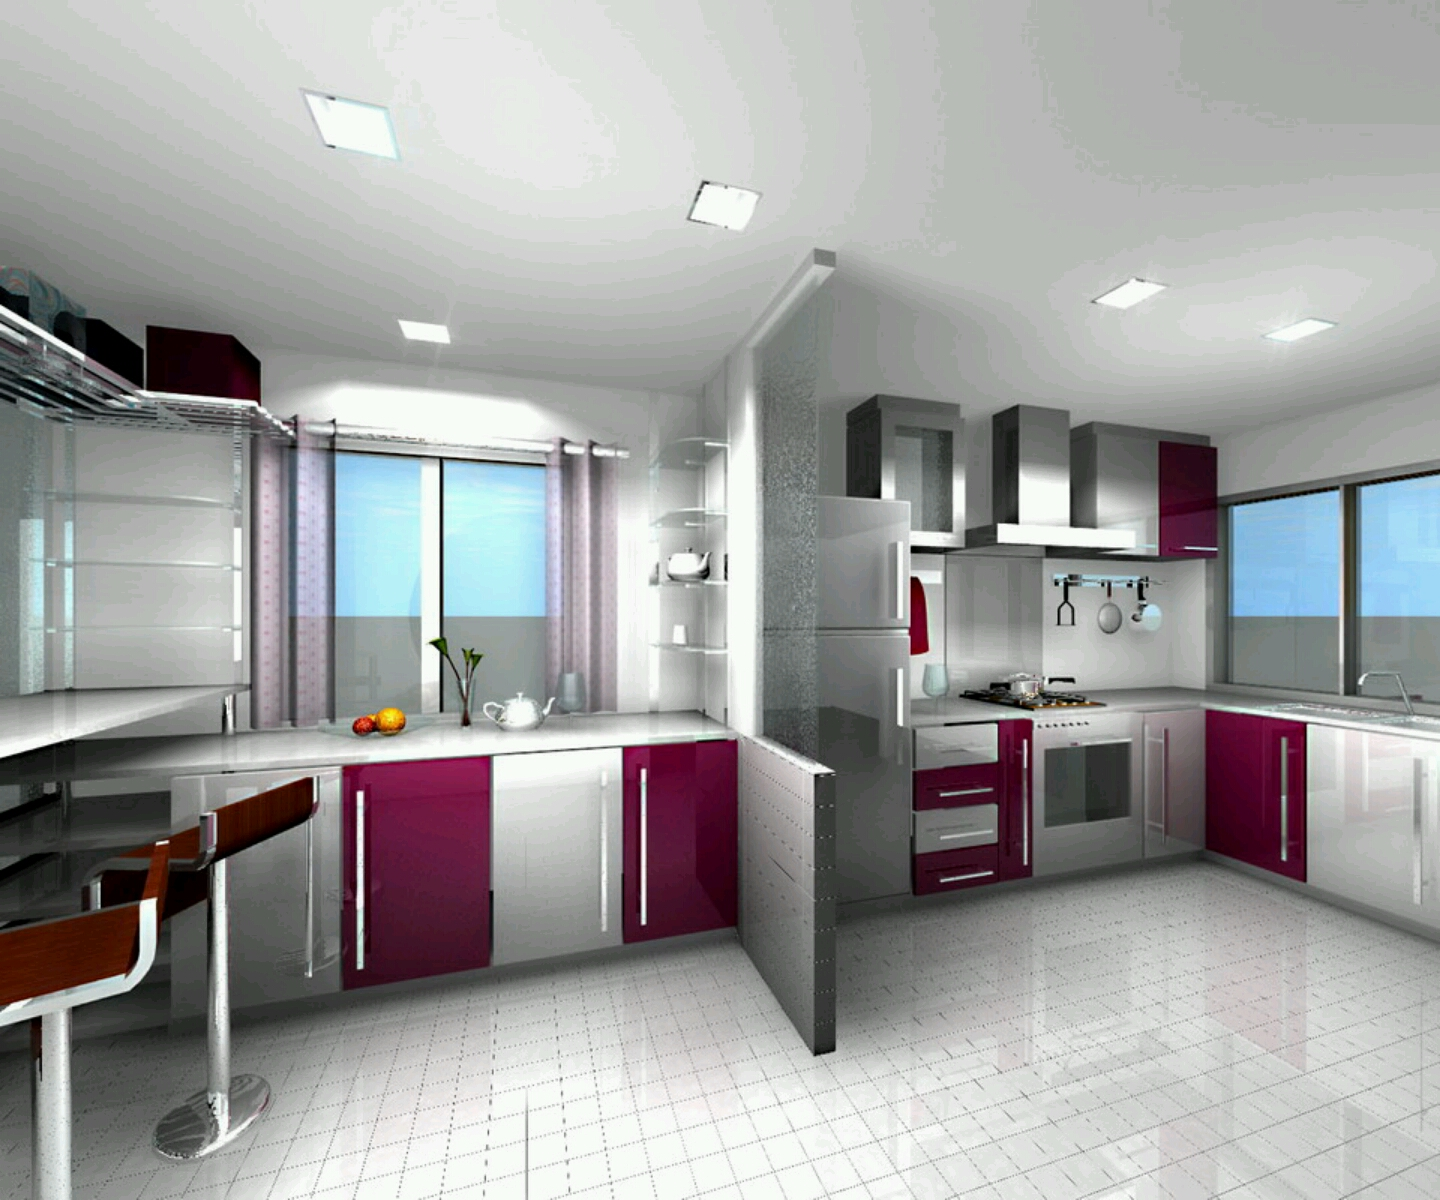 Modern homes ultra modern kitchen designs ideas modern home designs Kitchen design for modern house